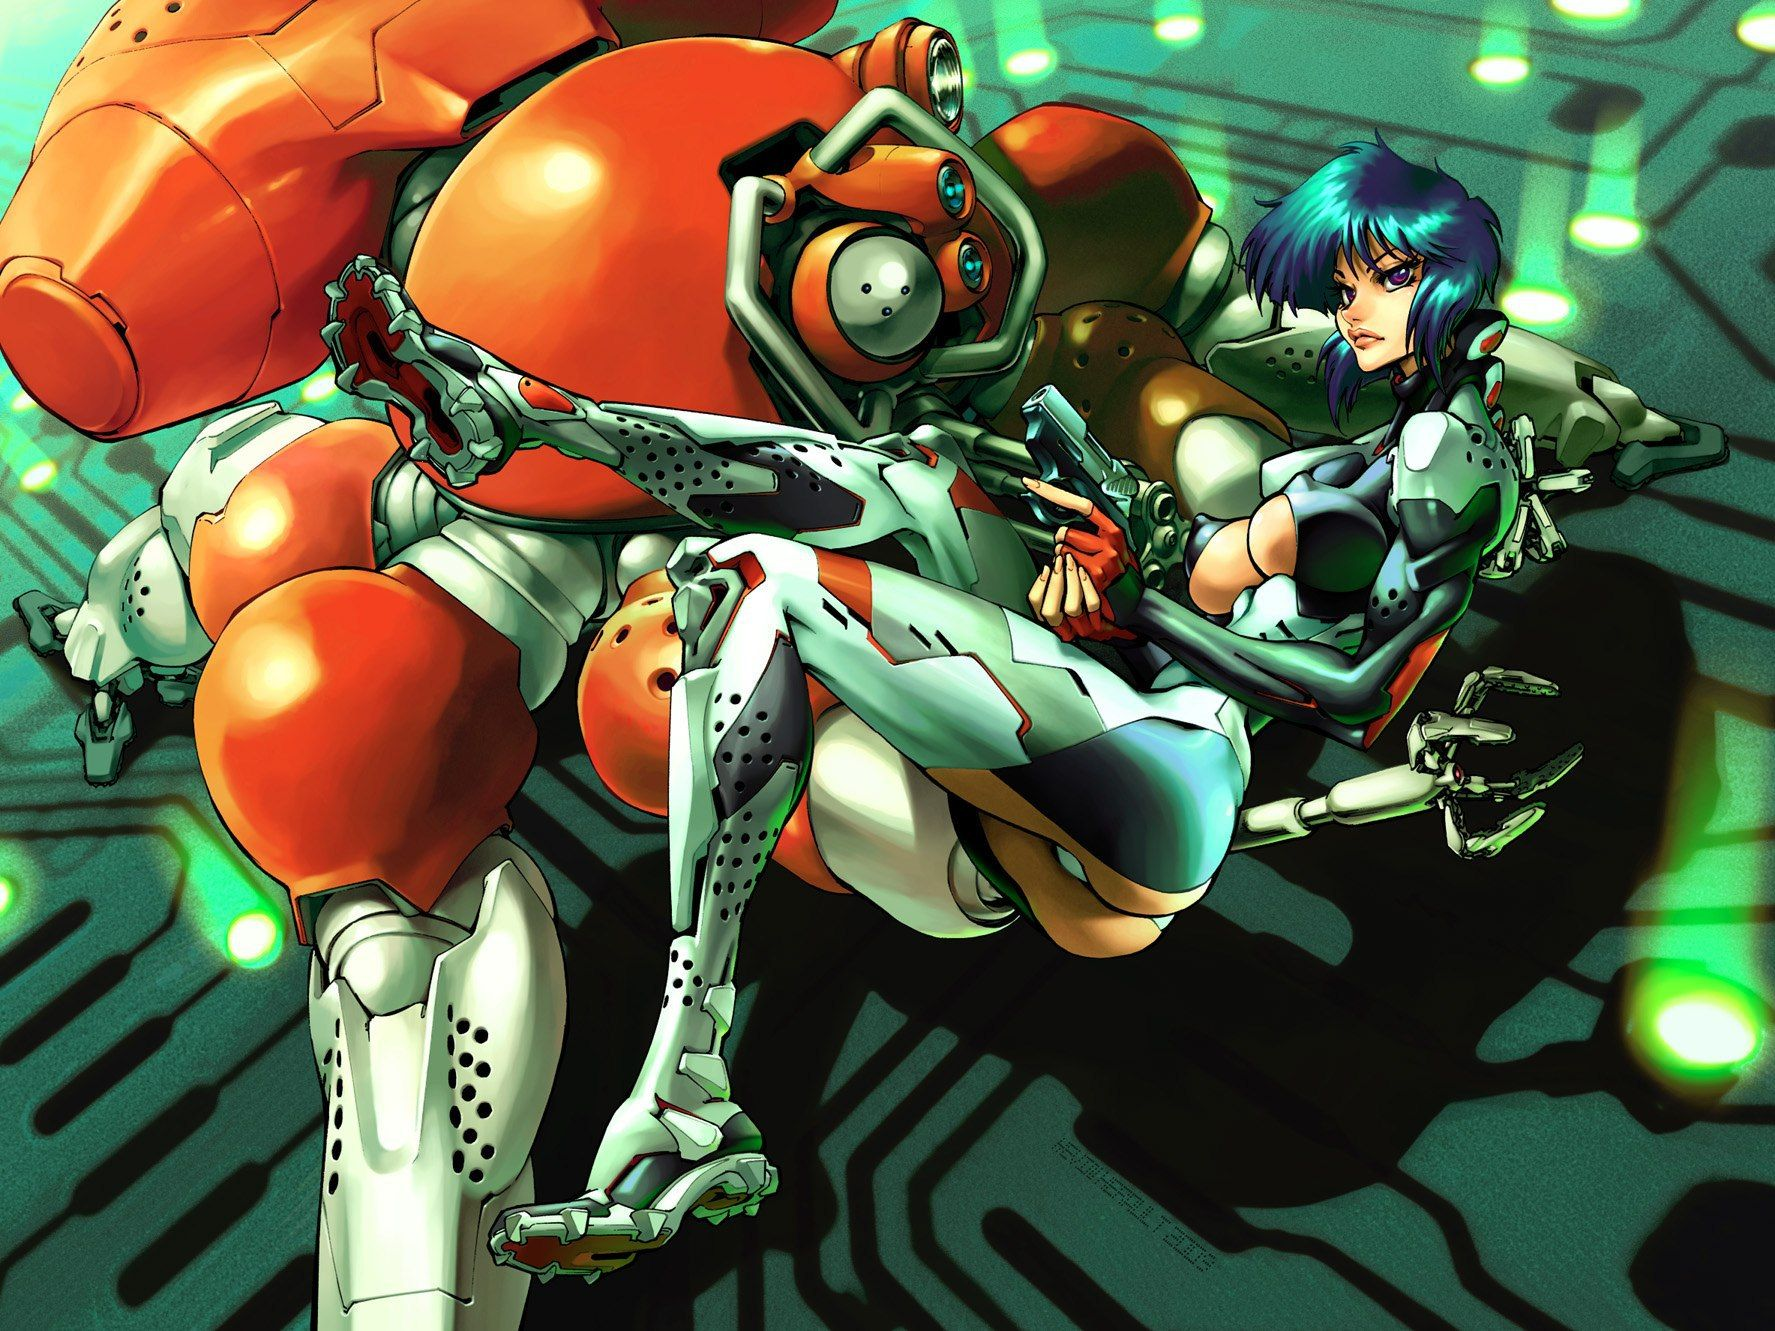 The Major Fuchikoma Ghost In The Shell Ghost In The Shell Anime Ghost Anime